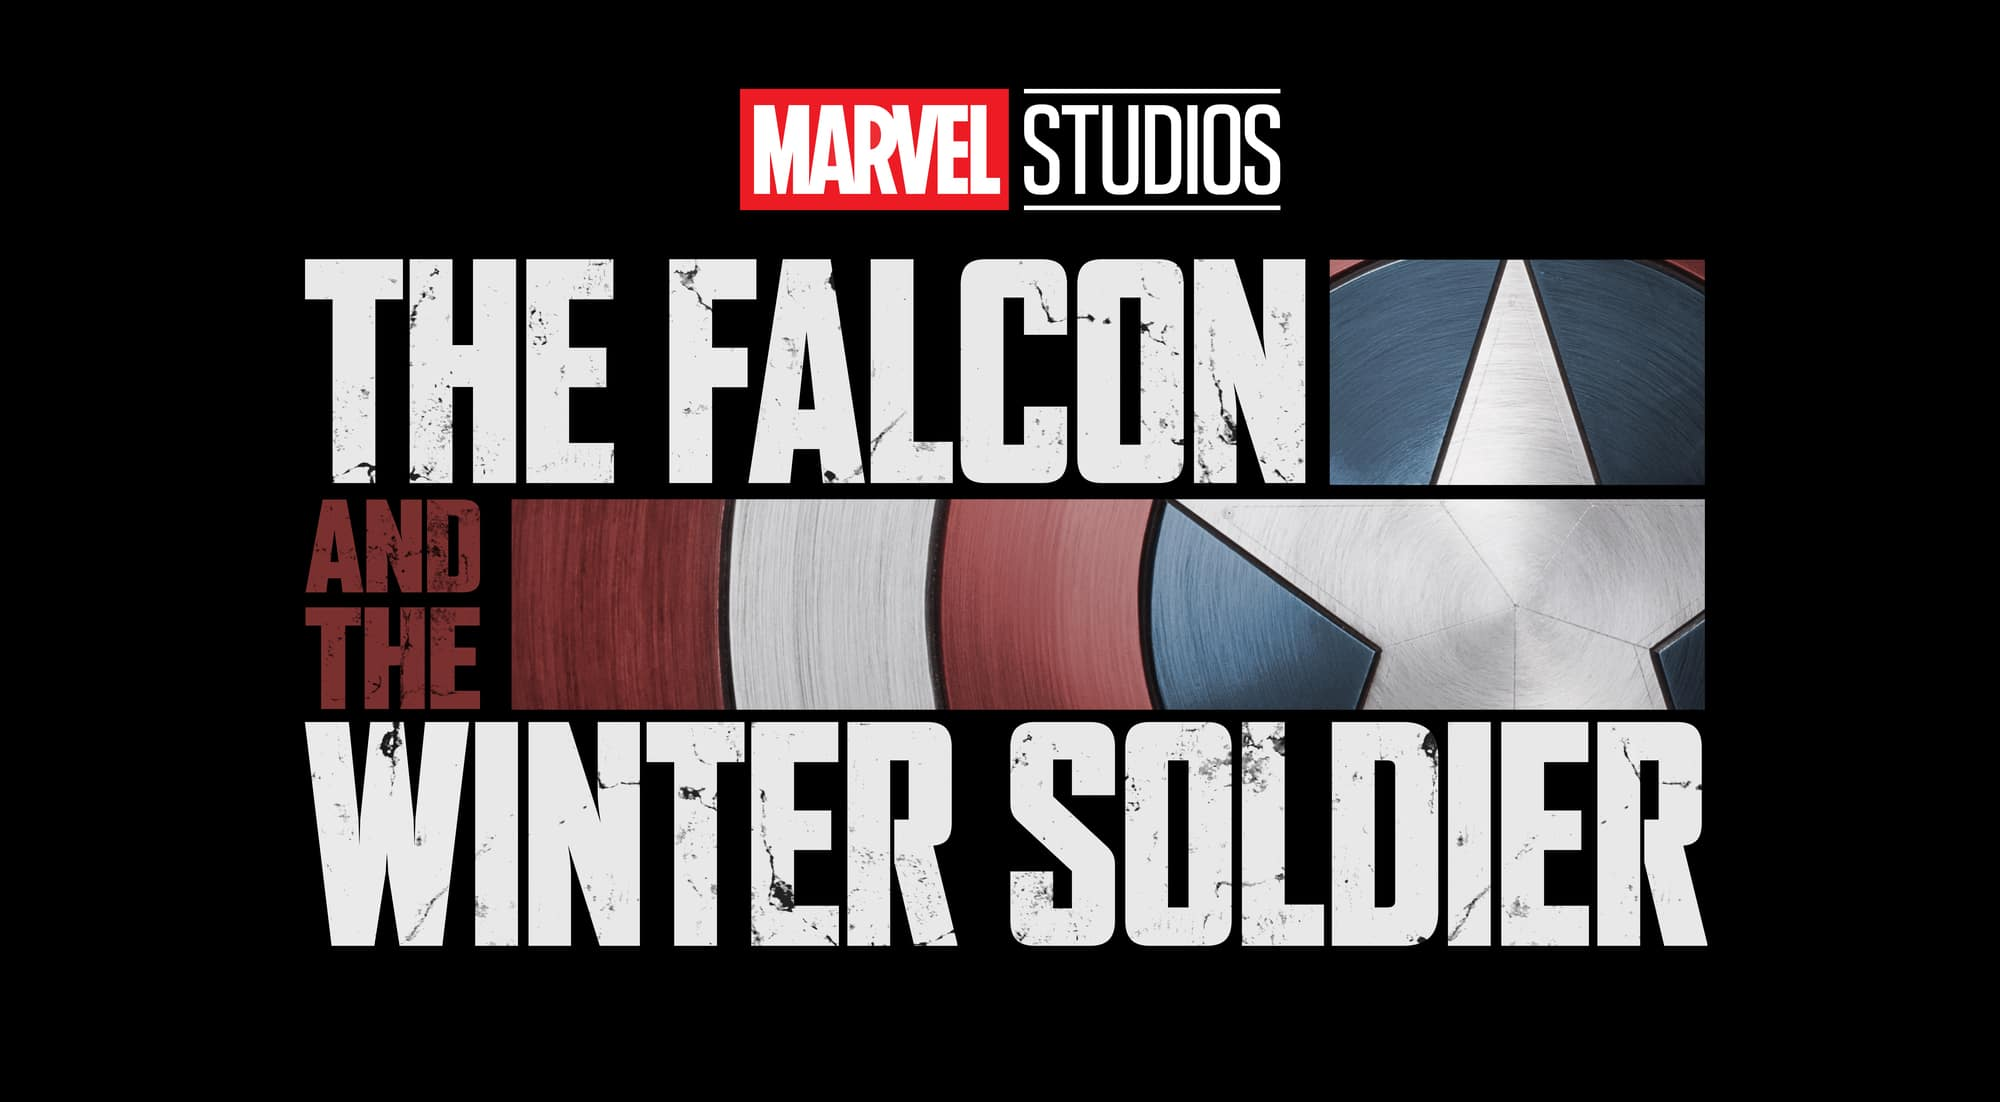 The Falcon and Winter Soldier Release Delayed to 2021